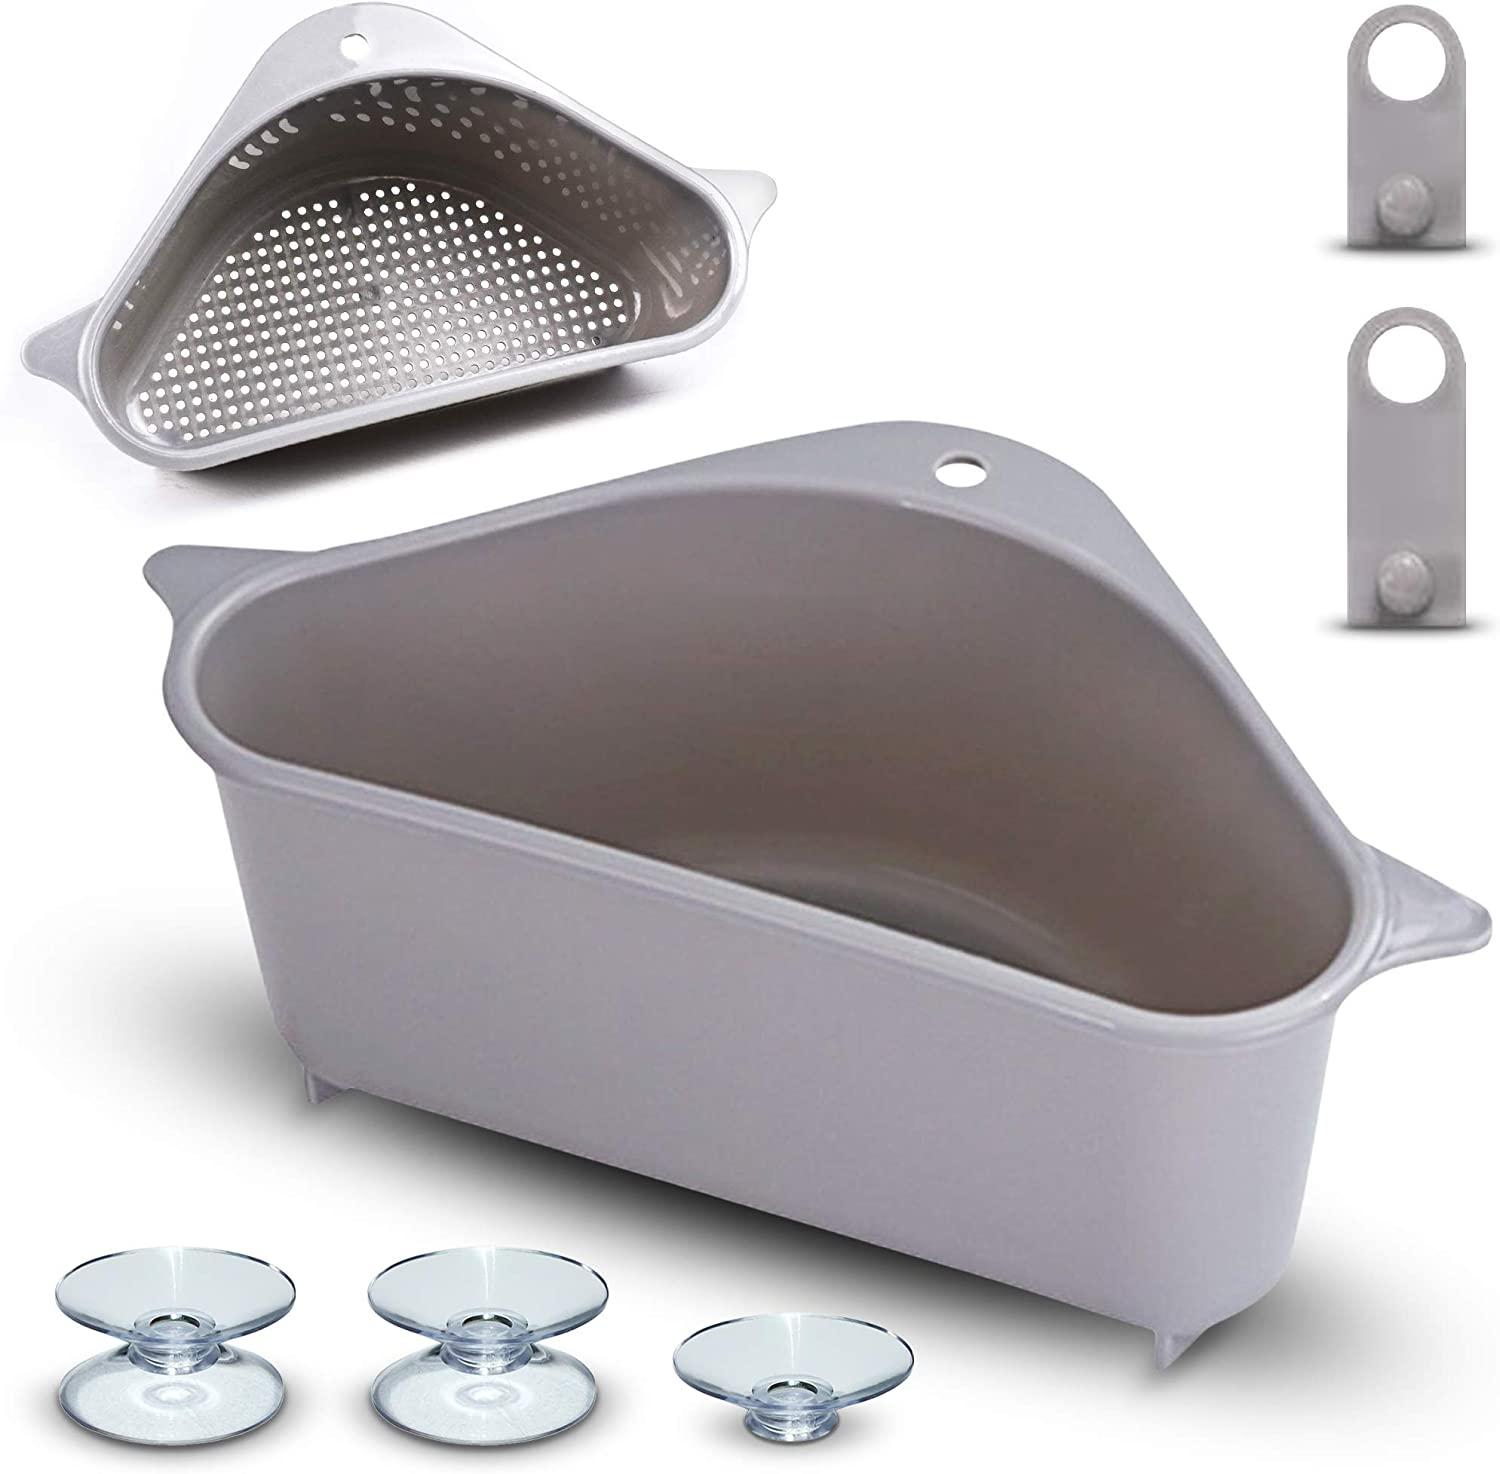 Sink Strainer Basket – Multi Purpose Corner Sink Basket Extra Strength Hanging Storage Rack for Kitchen, No Drill Soap Box Organizer Shelf for Peeling & Straining Compact Extra Suction for Better Hold